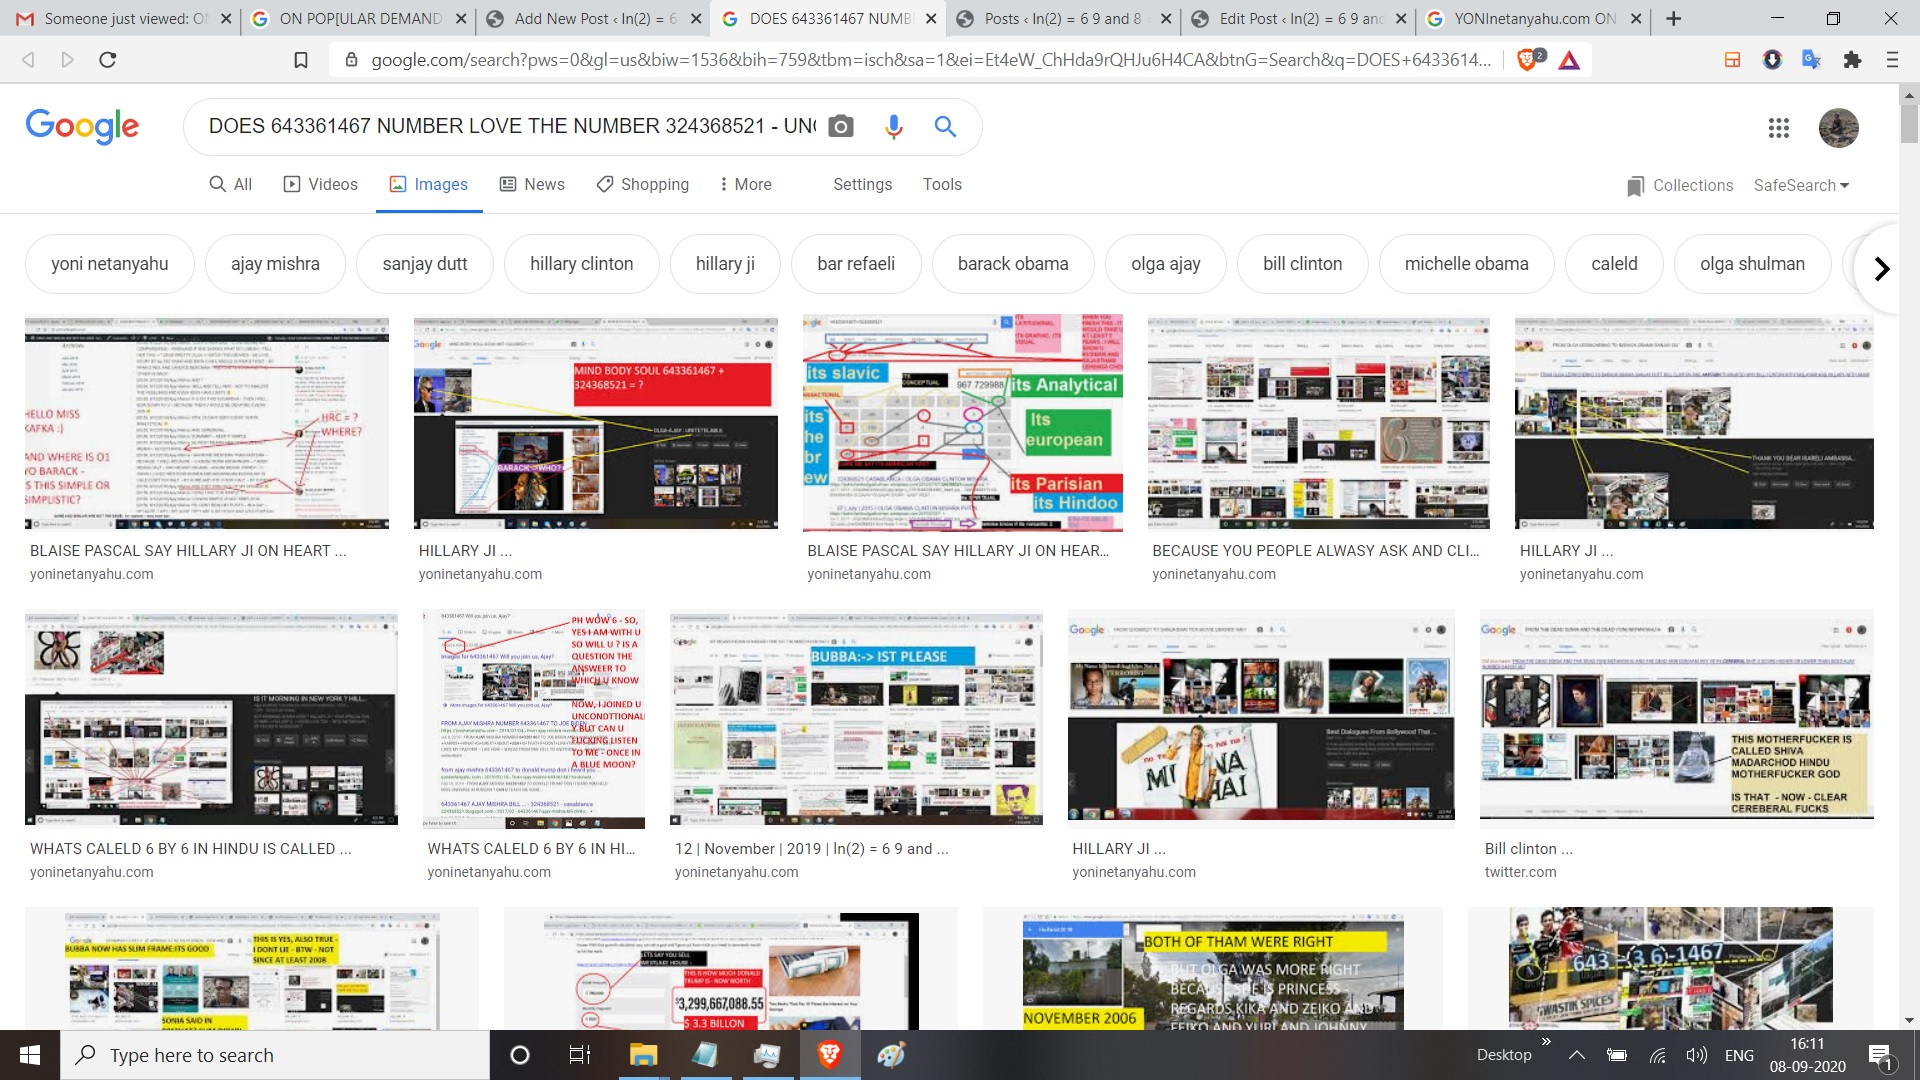 """ON POP[ULAR DEMAND - BECAUSE YOU PEOPLE ALWASY ASK AND CLICK MY BLOG POST CERMONIALLY - WHAT IS UNCONTIONAL OR TRUE LOVE - HERE IS THE ANSWR FROM GOOGLE """""""